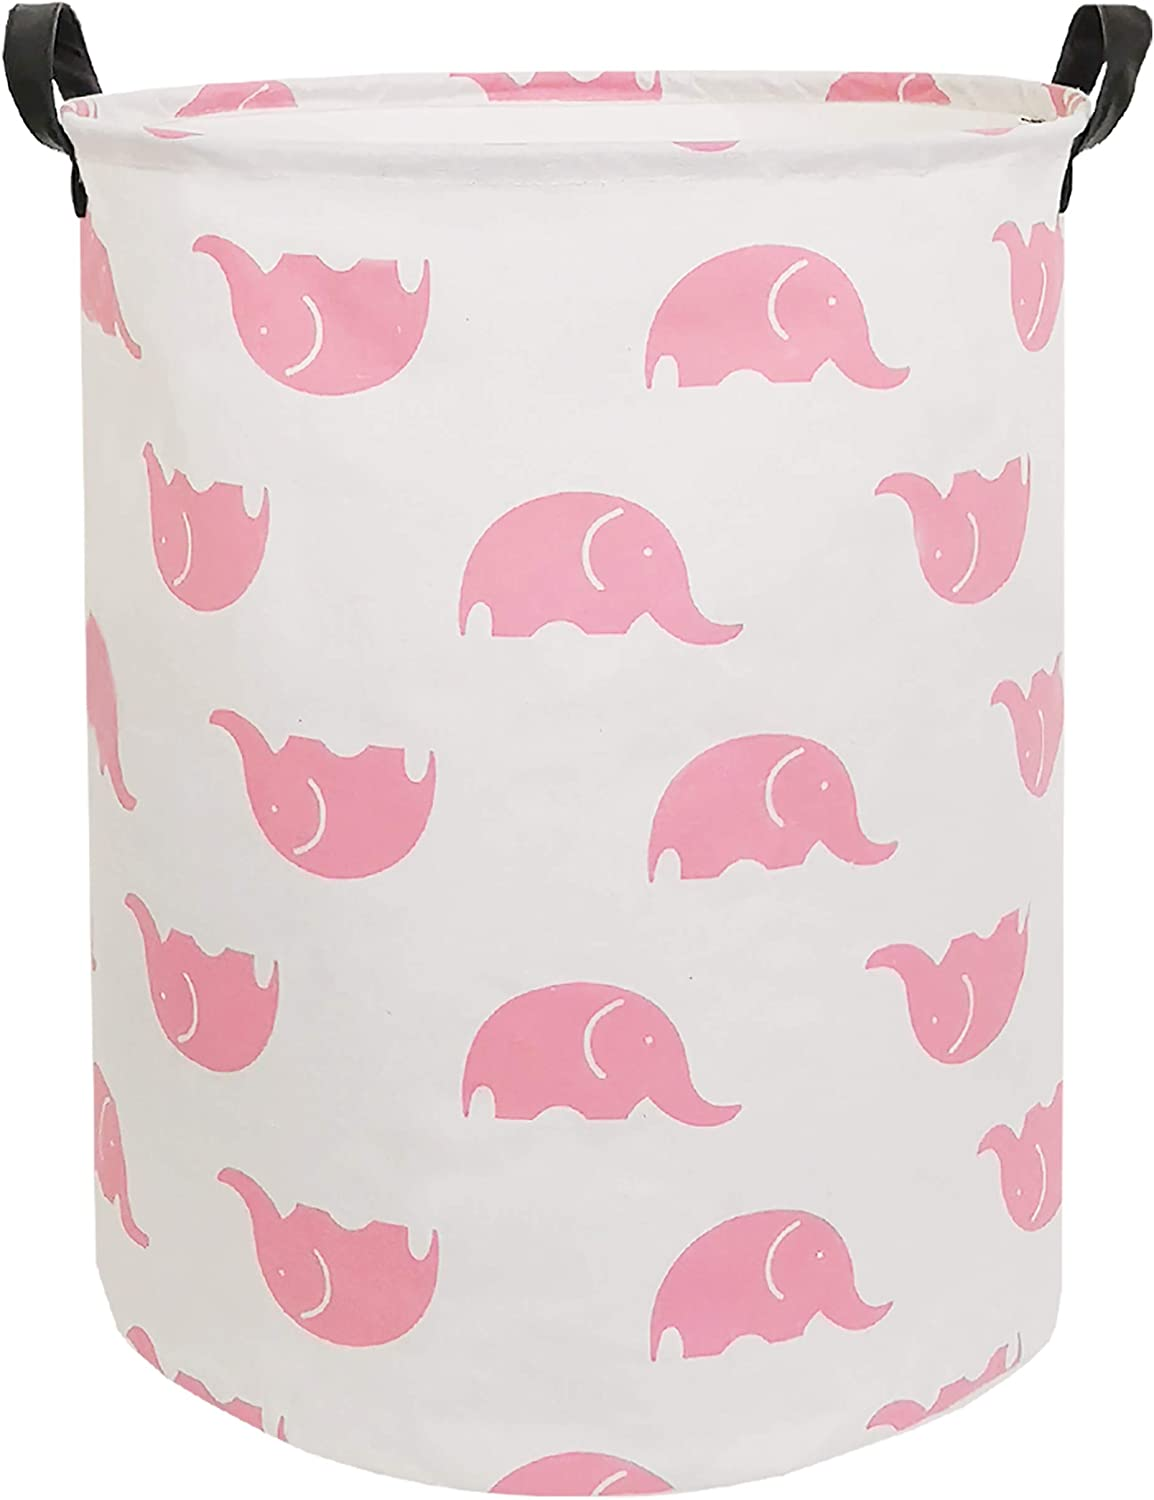 CLOCOR Large Storage Basket,Canvas Fabric Waterproof Storage Bin Collapsible Laundry Hamper for Home,Kids,Toy Organizer (Pink Elephants)